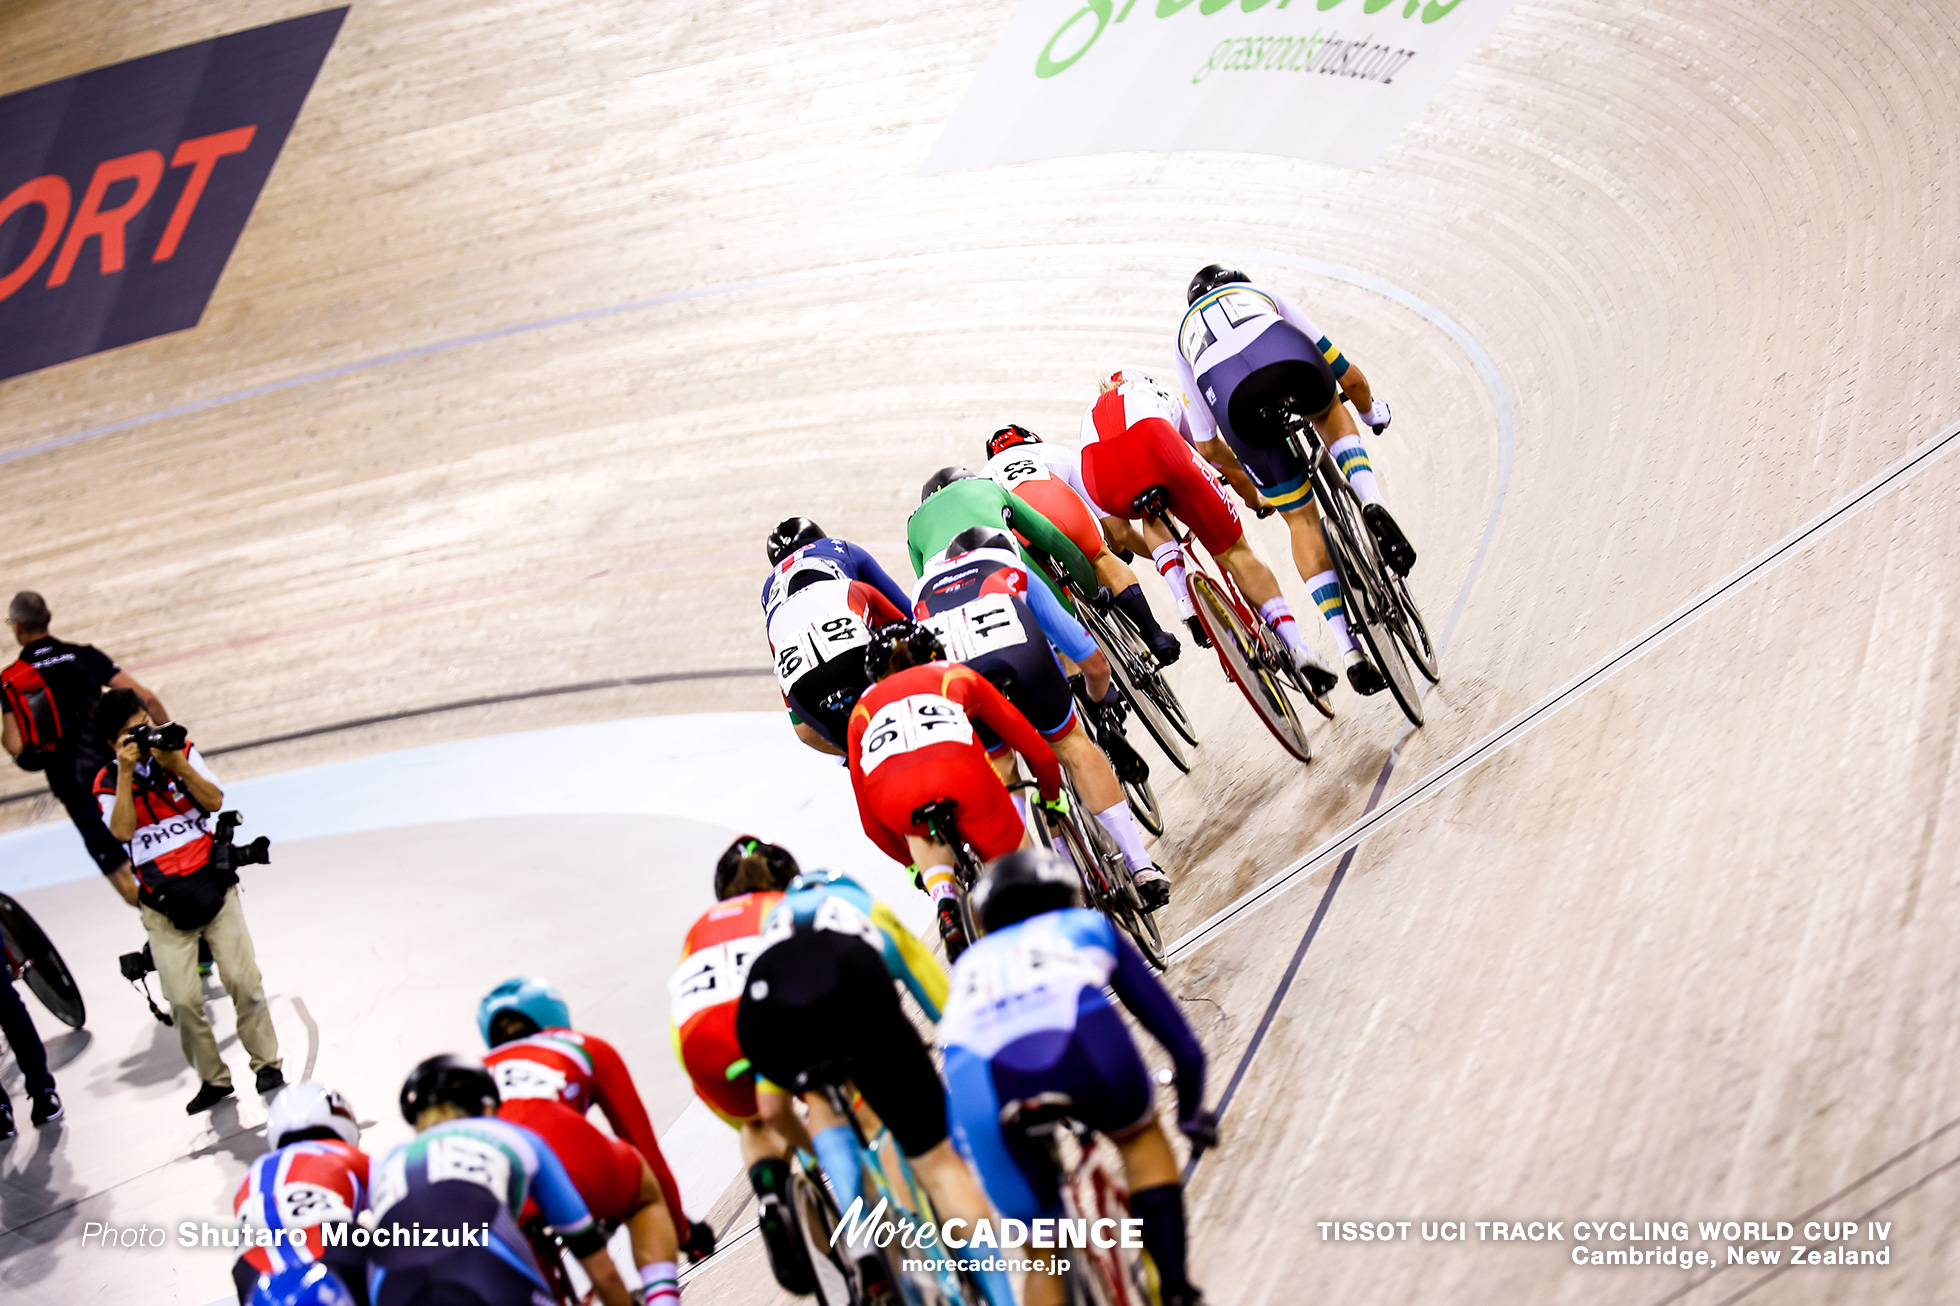 Scratch Race / Women's Omnium / TISSOT UCI TRACK CYCLING WORLD CUP IV, Cambridge, New Zealand